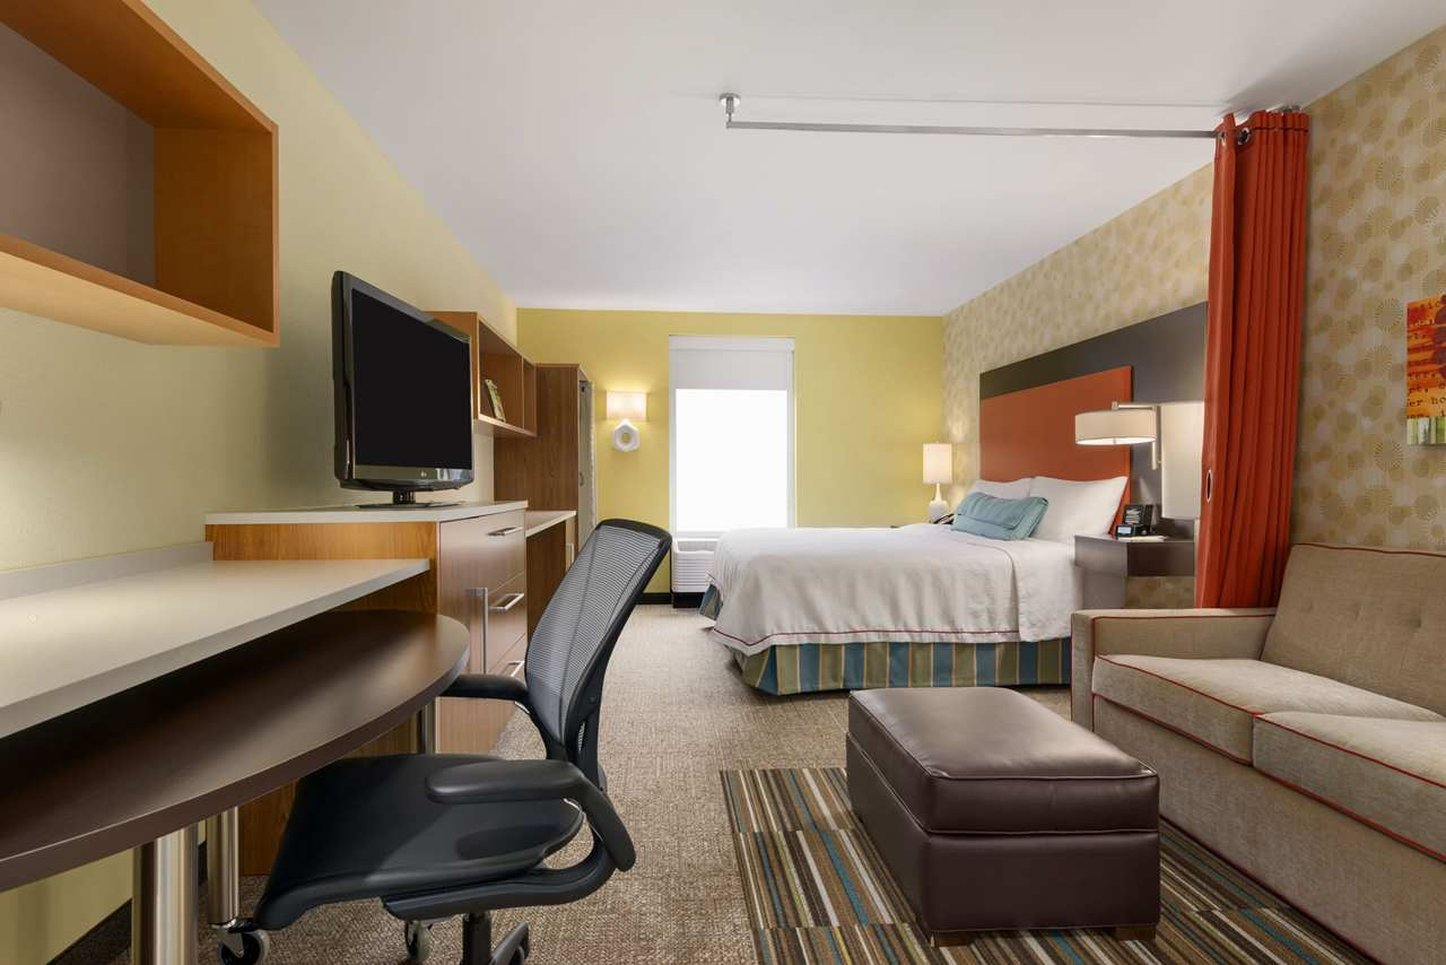 Home2 Suites by Hilton Charlotte I-77 South